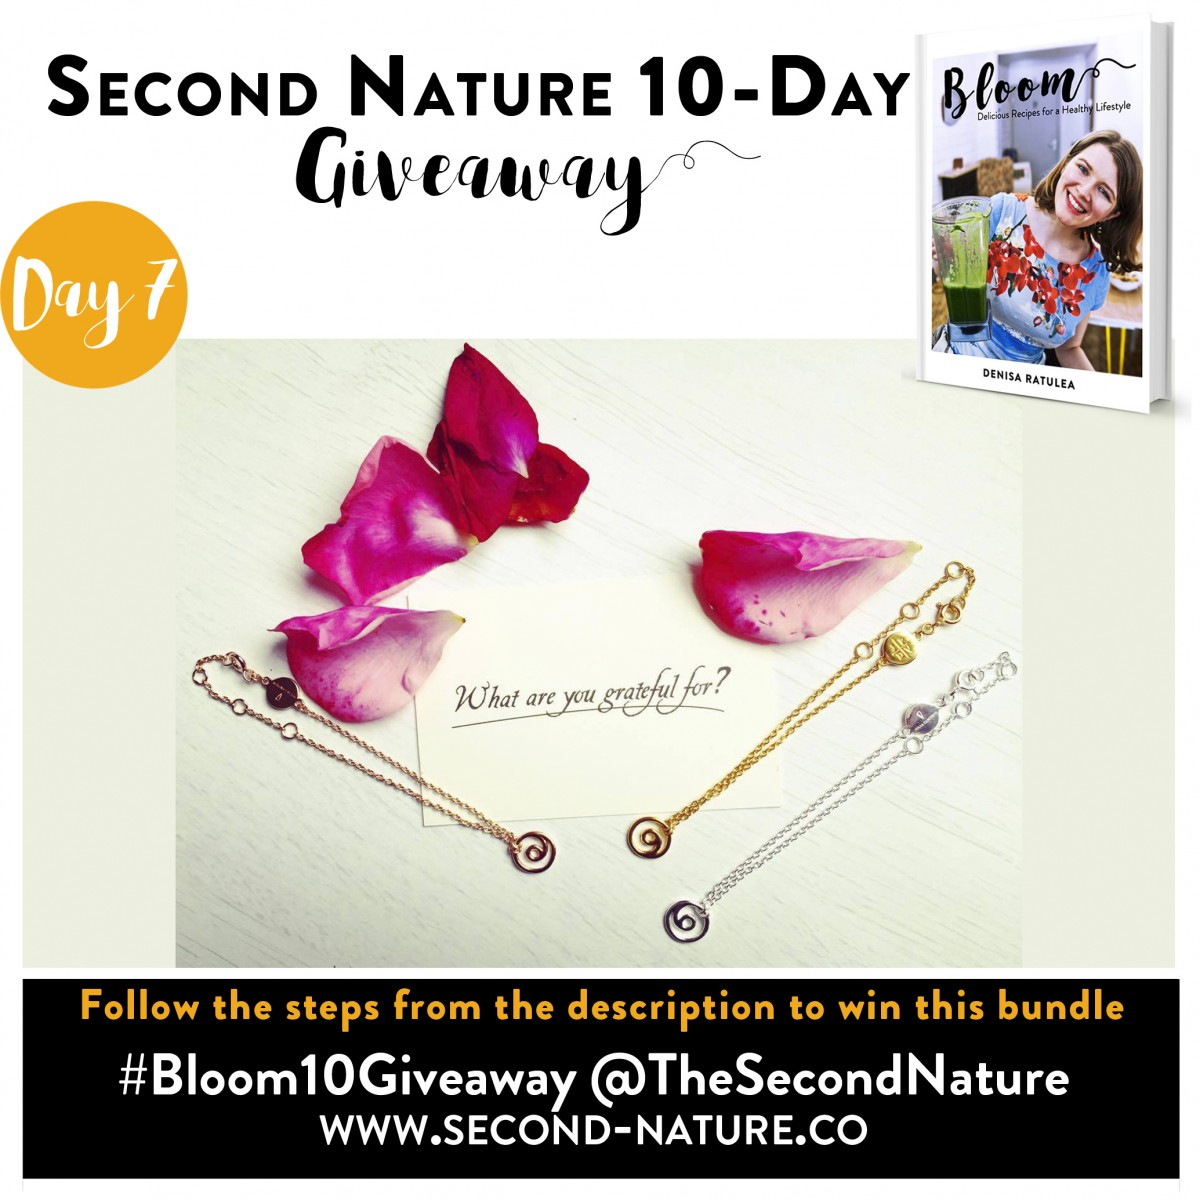 Second Nature - Bloom 10 Giveaway